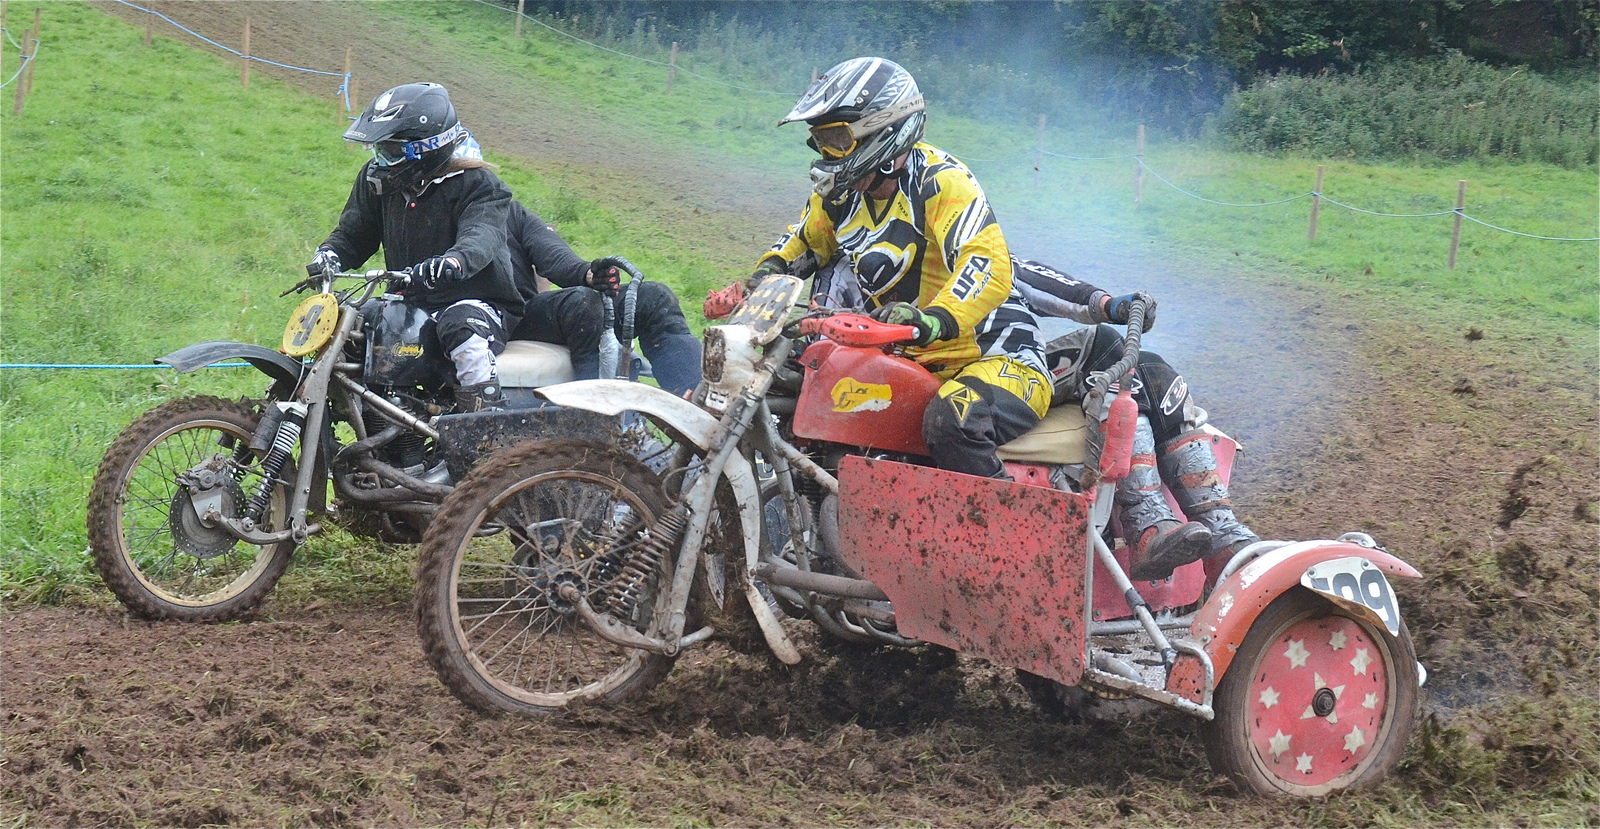 Llanthony Classic Scramble Photos September 2015 classicdirtbikerider.com..23